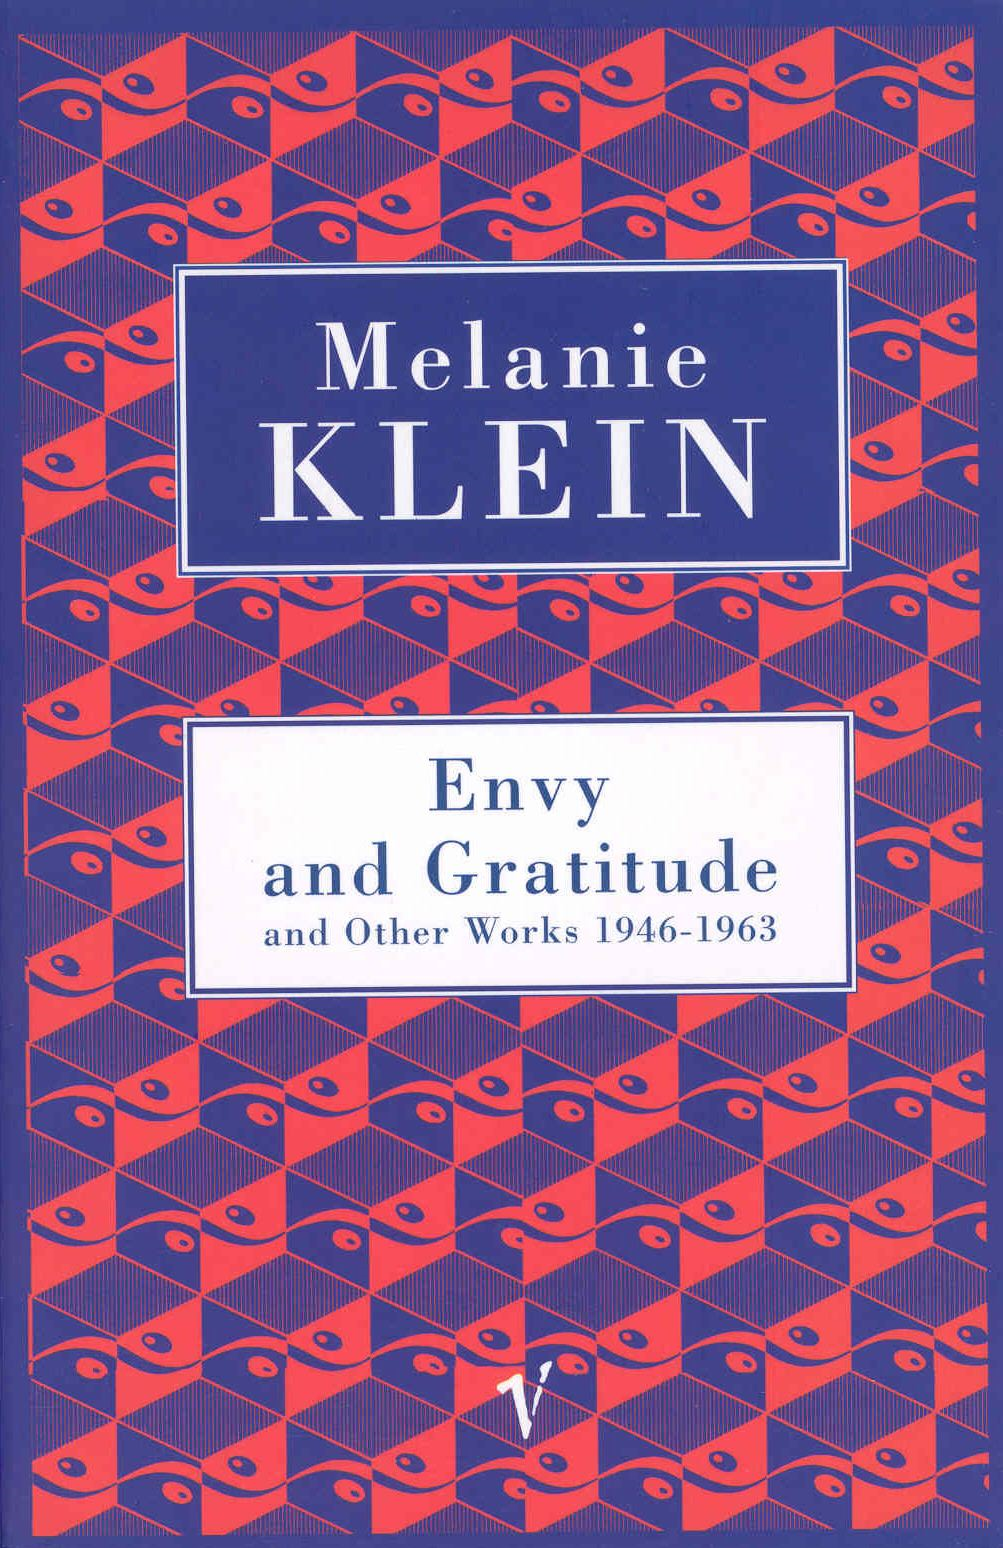 Envy And Gratitude And Other Works 1946-1963 By: The Melanie Klein Trust